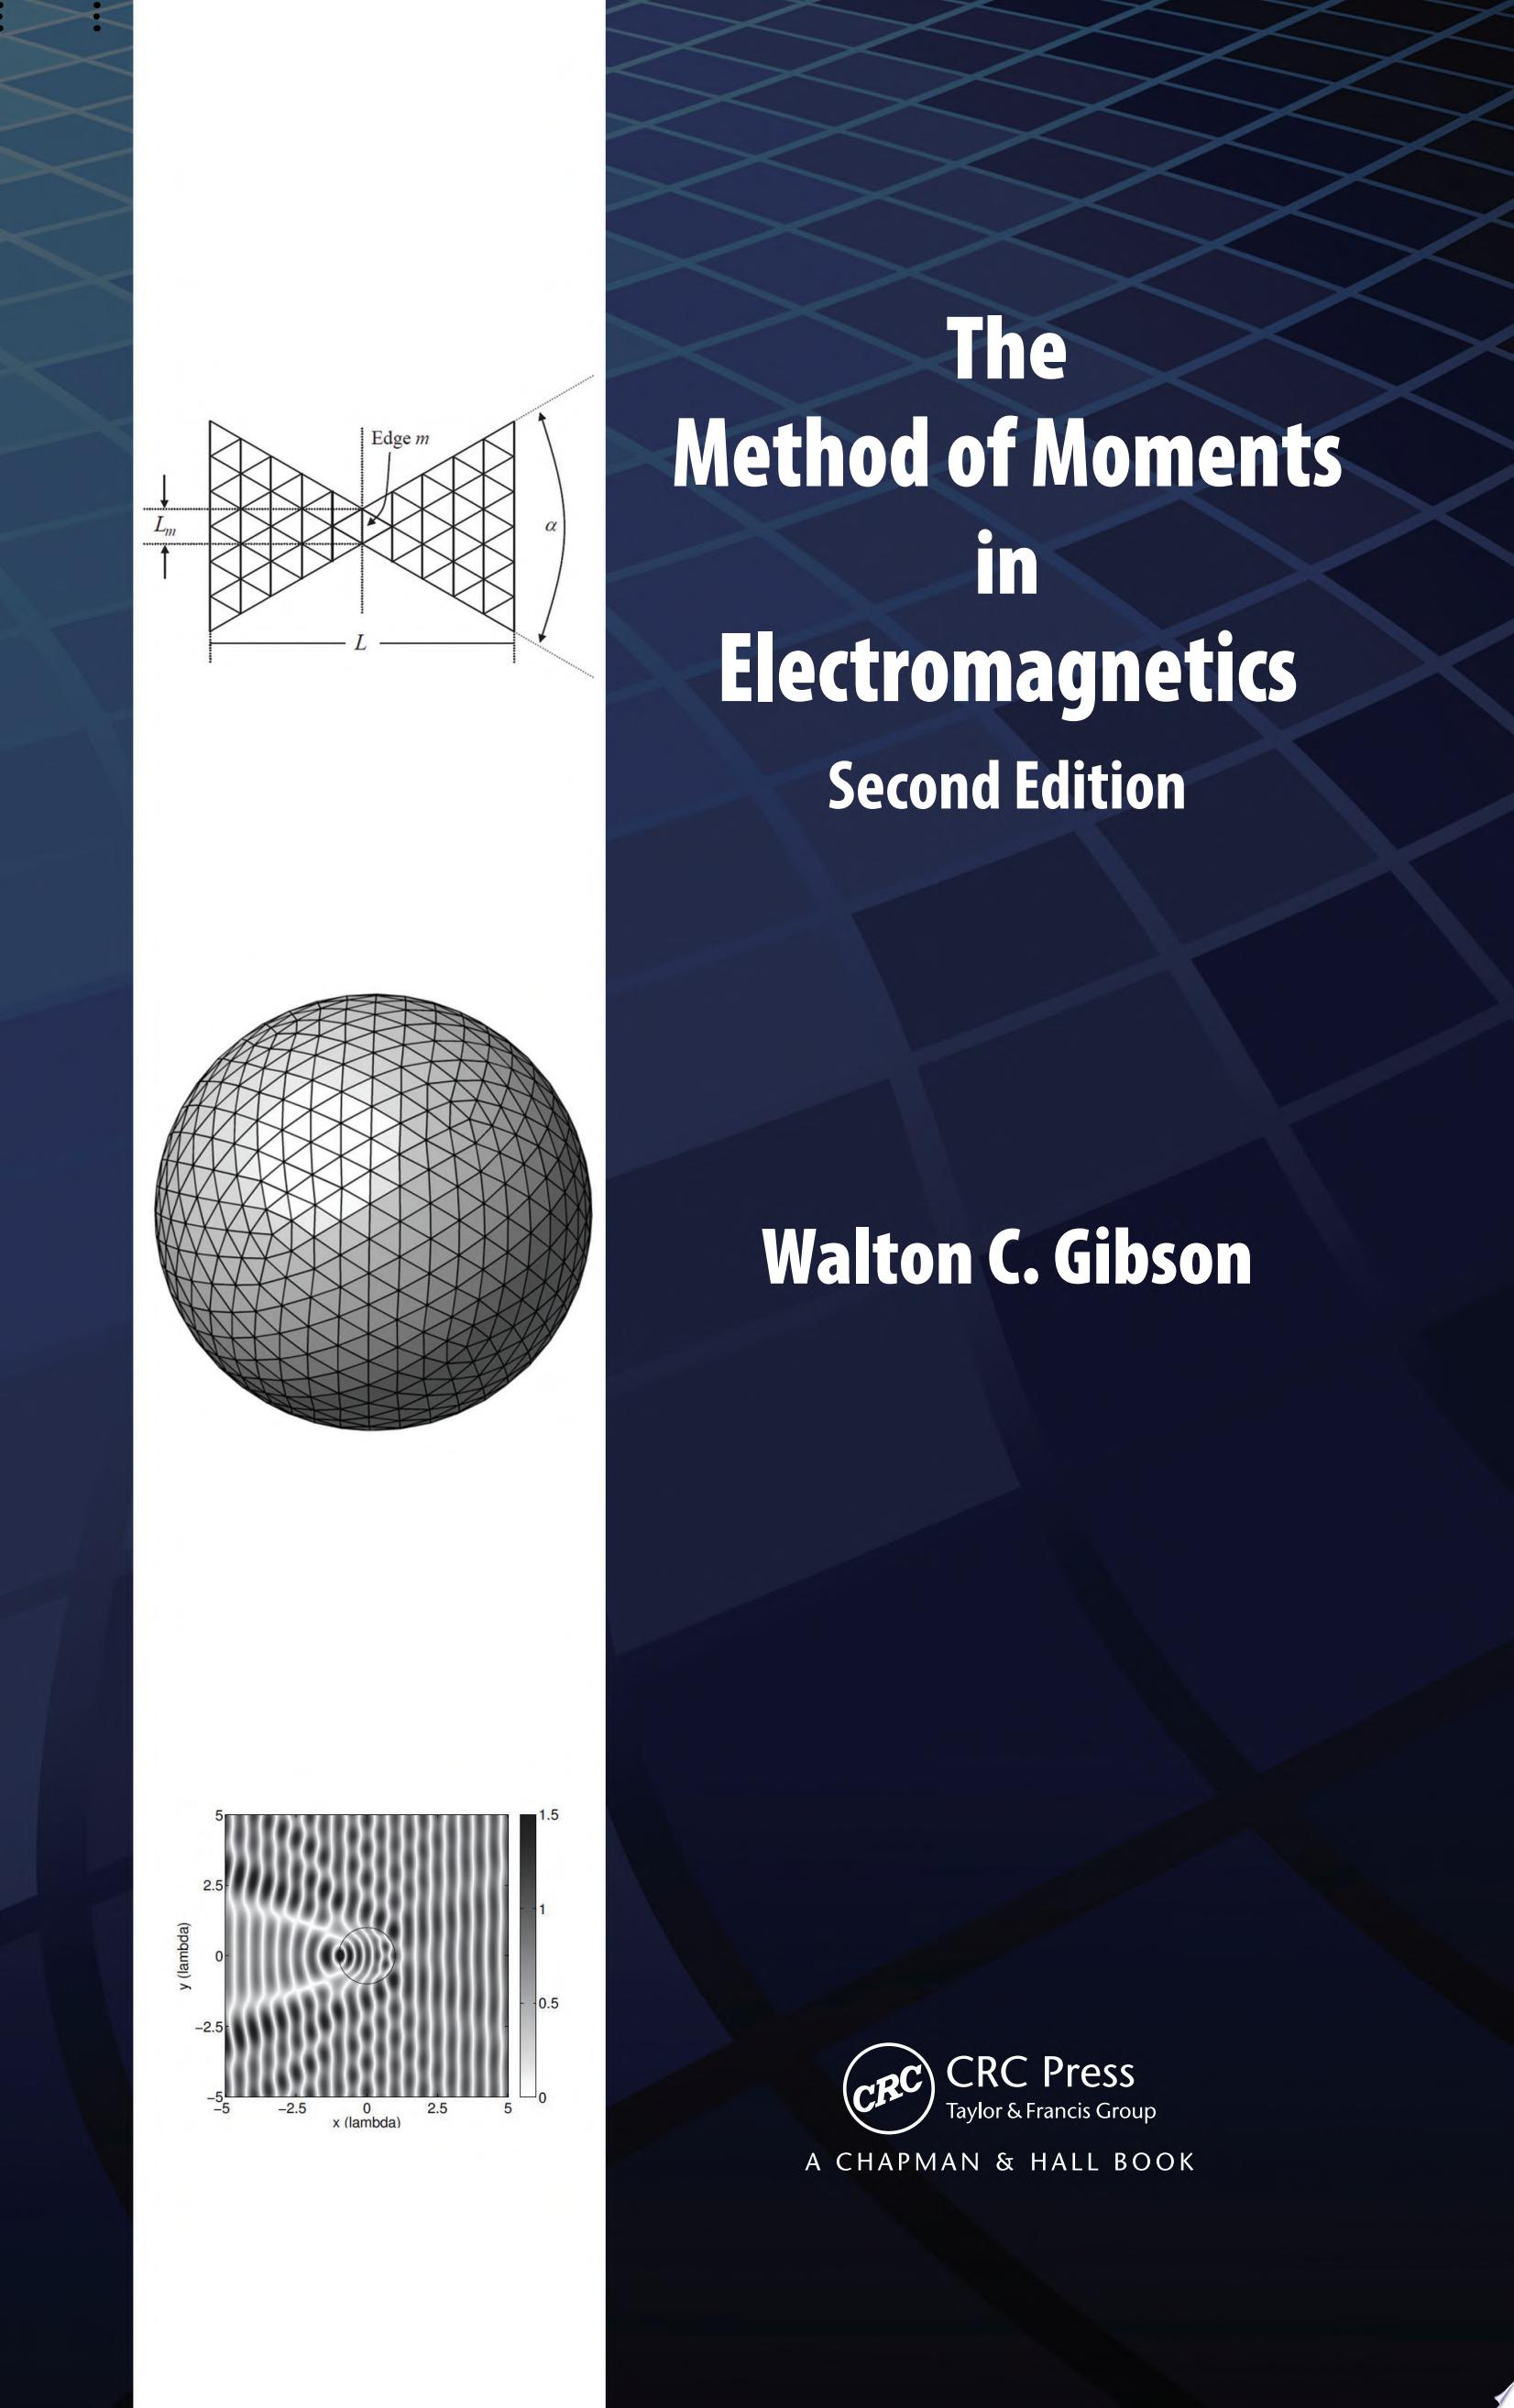 The Method of Moments in Electromagnetics  Second Edition